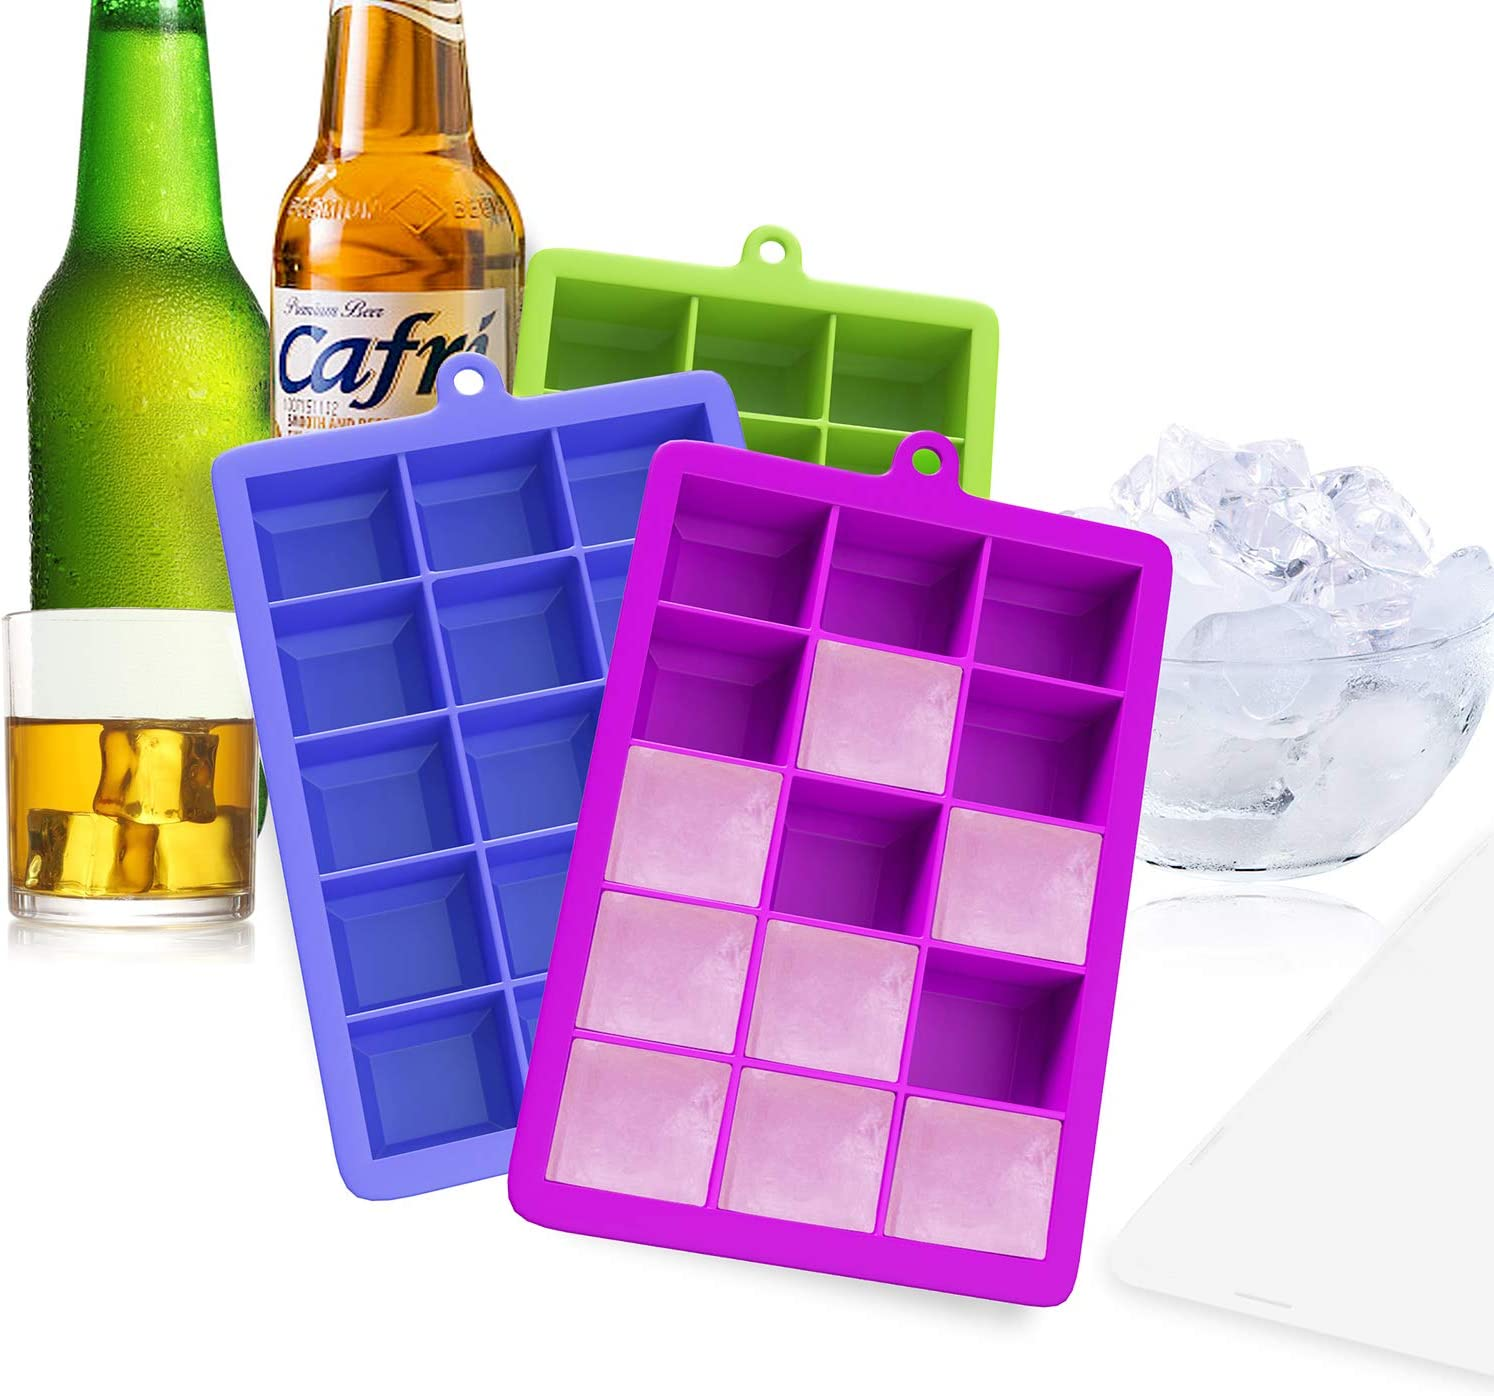 Ouddy 3 Pack Ice Cube Trays, Easy Release Ice Tray Make 45 Square Ice Cubes, Silicone Ice Cube Tray Fit Whiskey Storage, Cocktail, Beverages, Suit Dishwasher, BPA Free